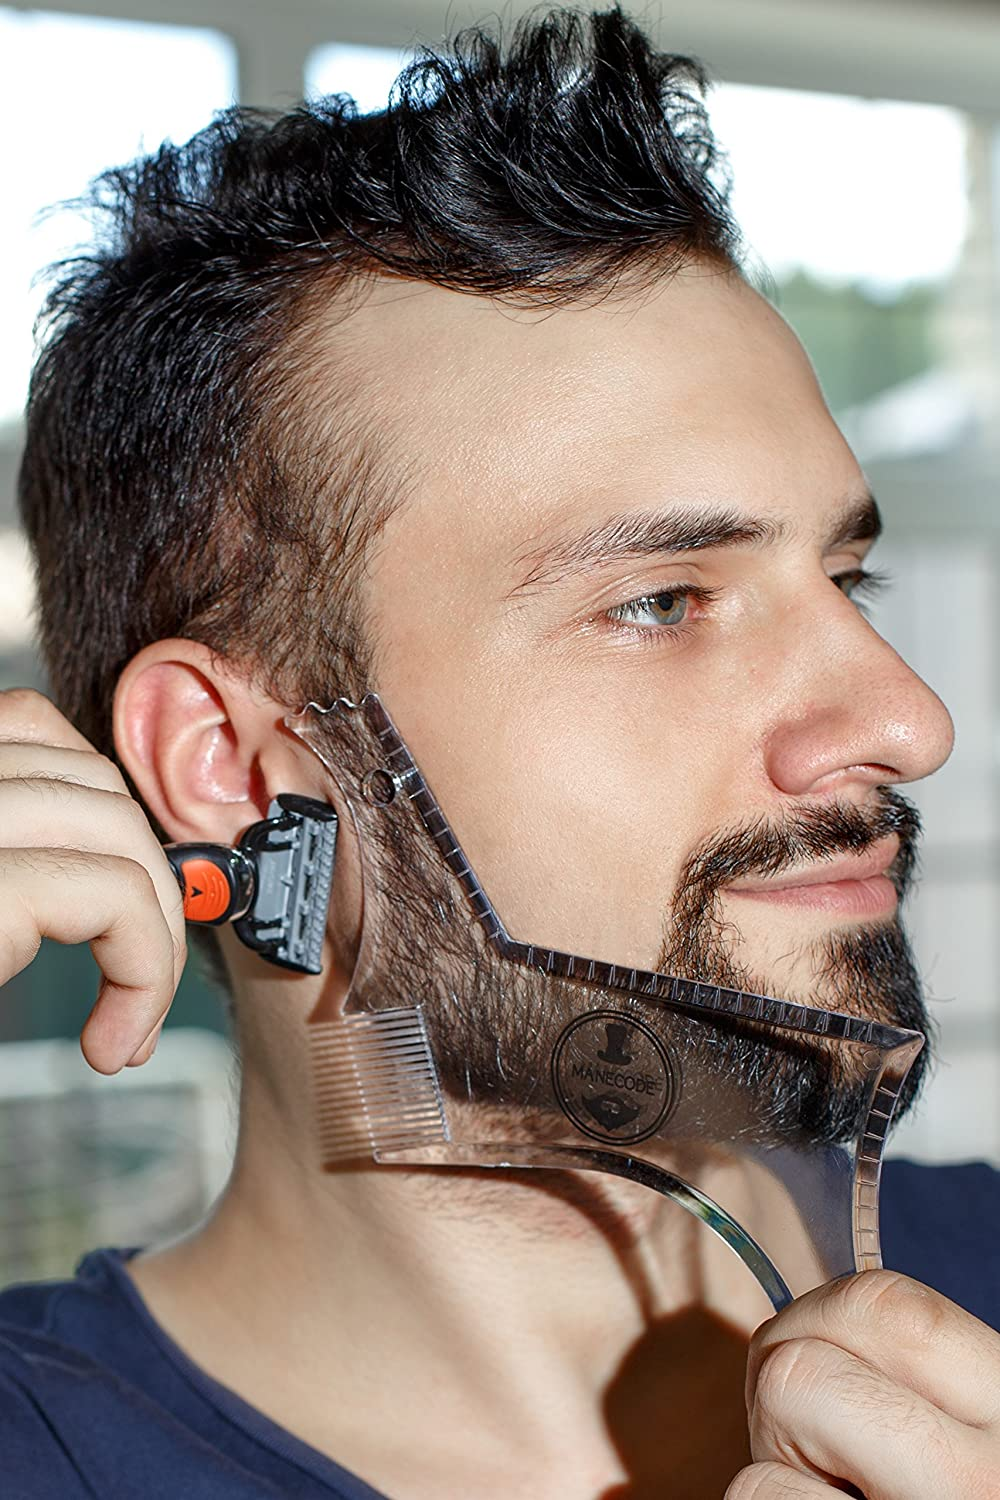 Manecode Beard Guide Shaper Tool   Clear Trimming Template   Shaping Stencil With Built In Comb by Manecode